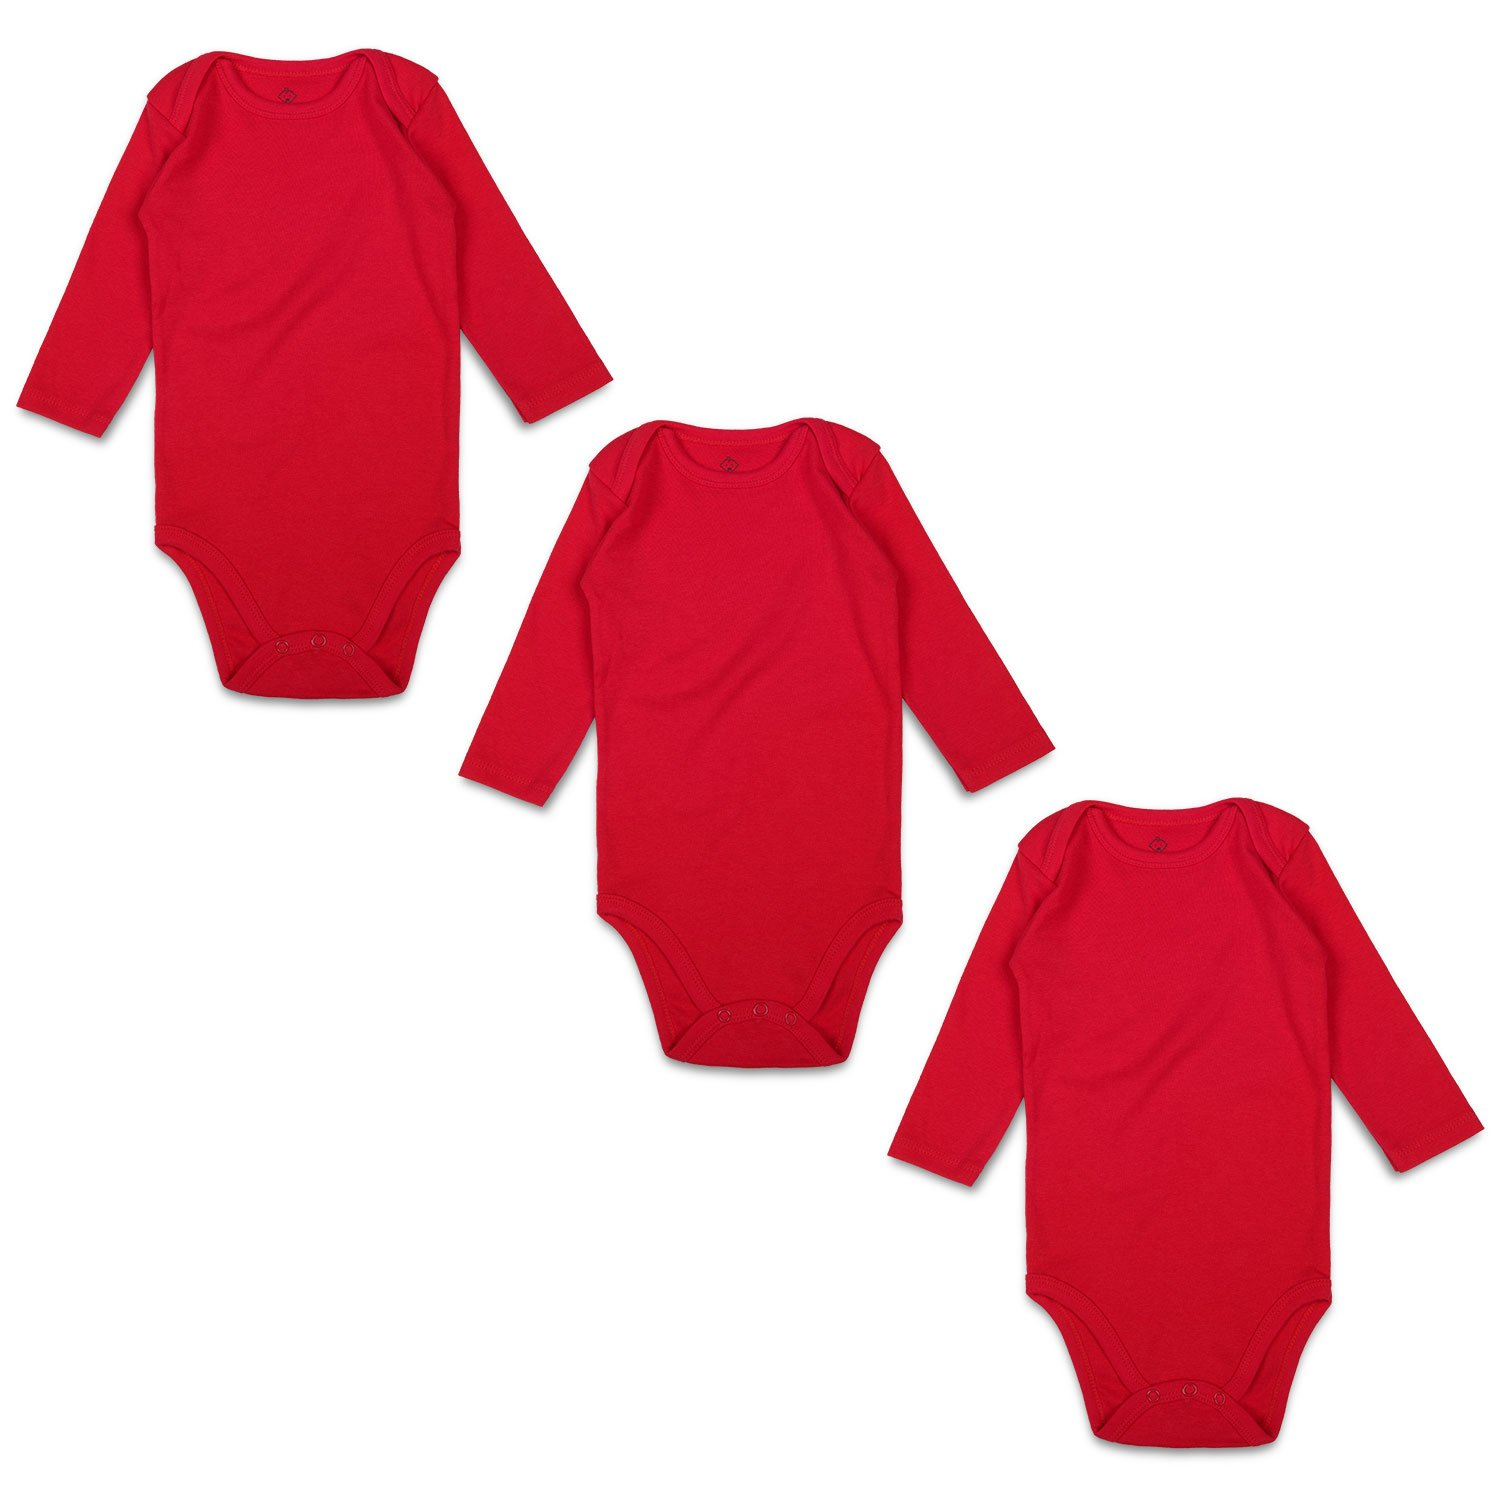 OPAWO Unisex Baby Bodysuits Long Sleeve Pack of 3 0-24 Months